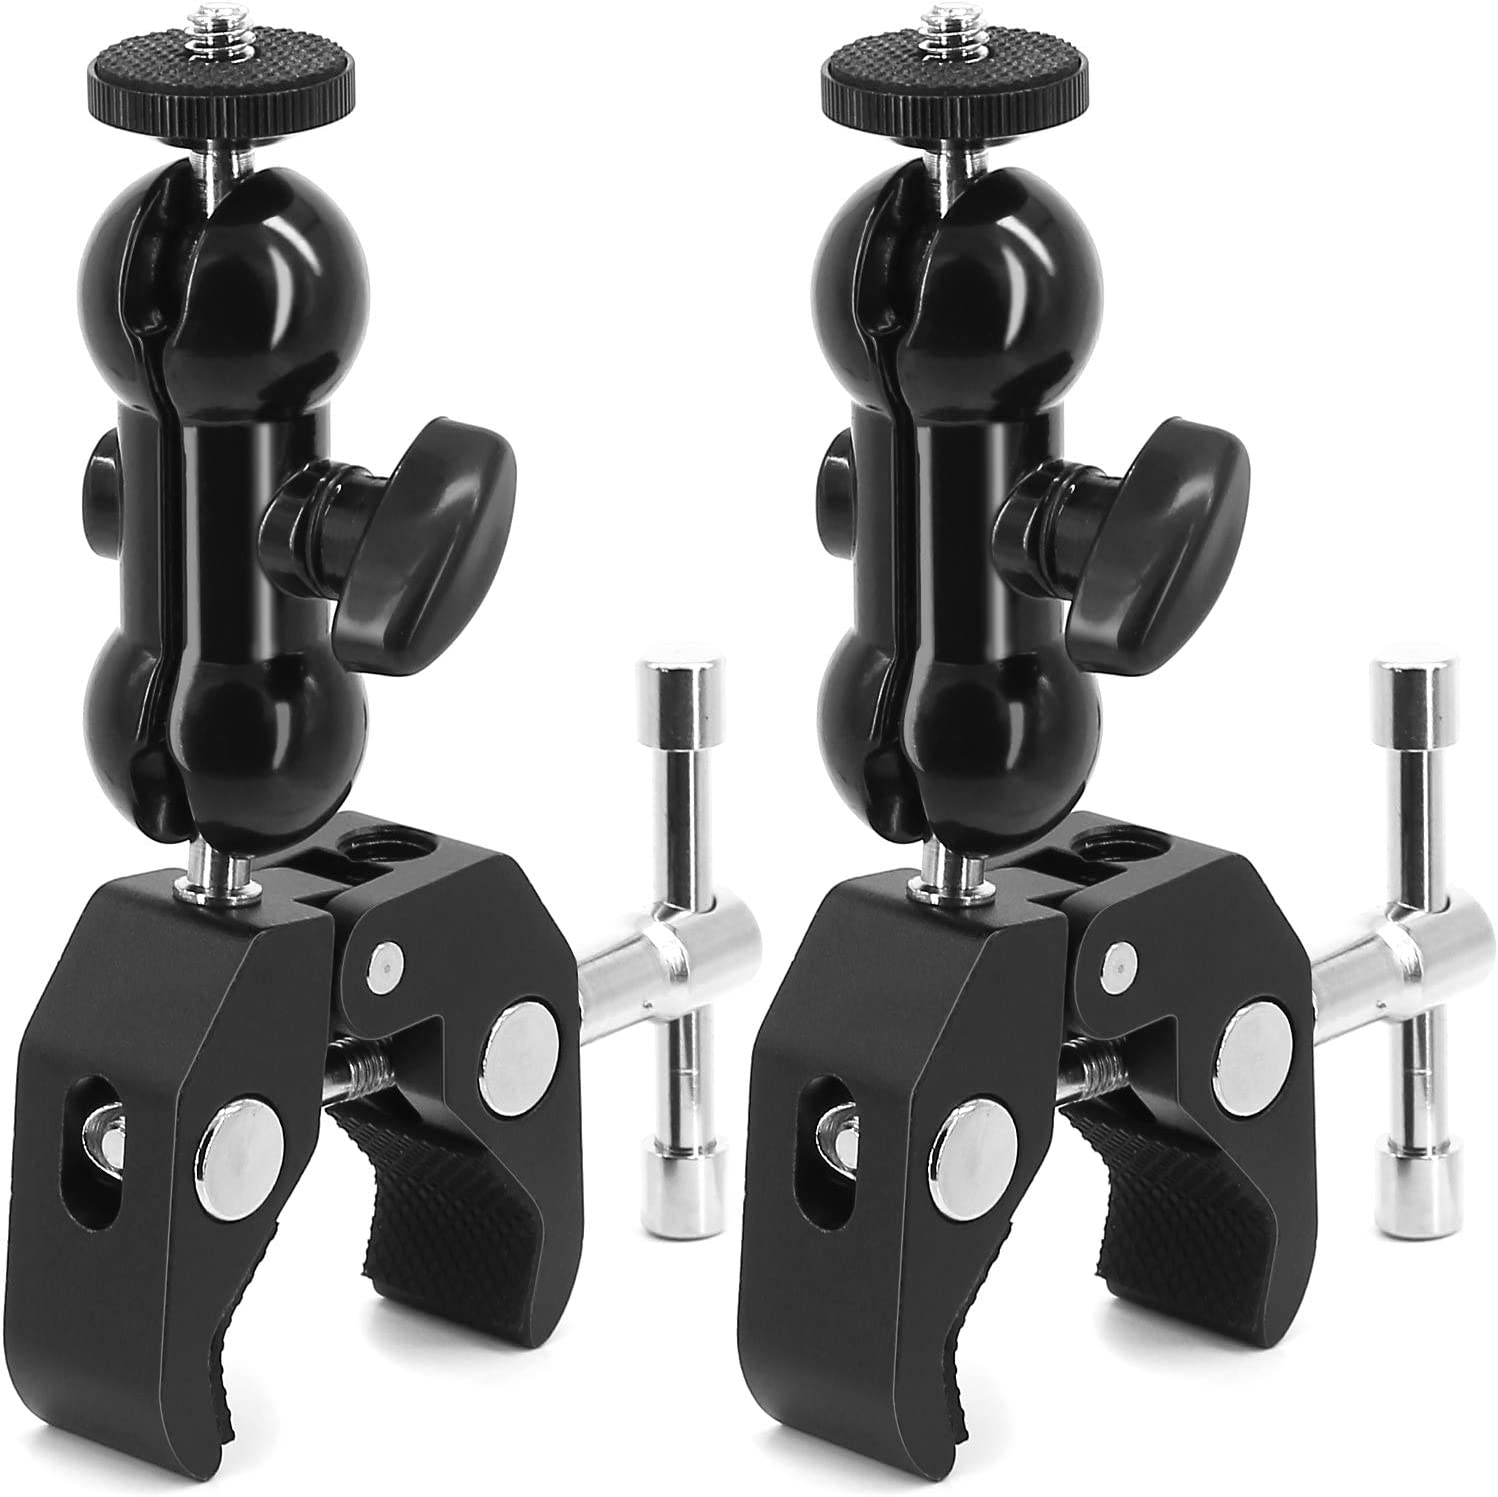 2Pack Camera Clamp Mount Monitor Mount Bracket Double Ballhead Ball Arm with Super Clamp for Ronin M Ronin MX Freefly MOVI